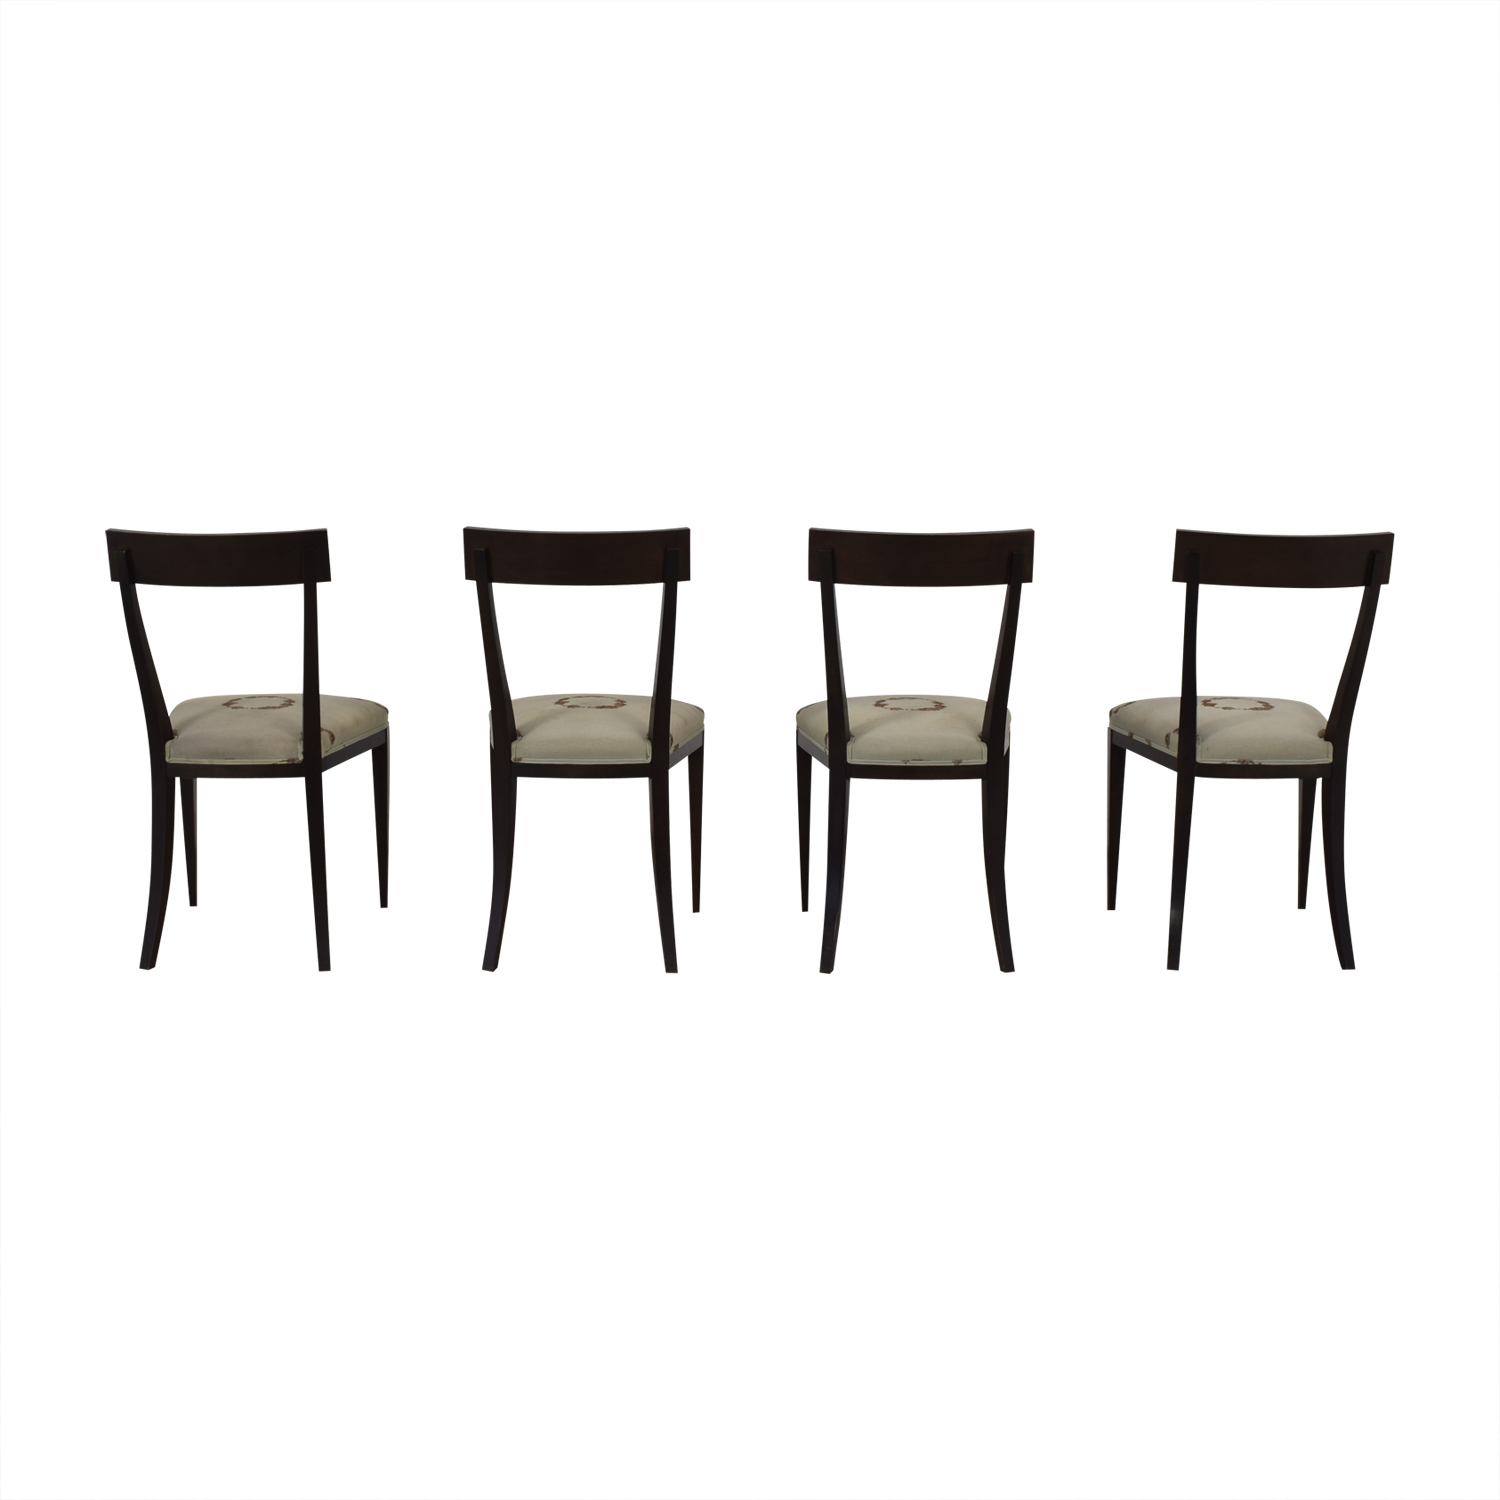 shop Annibale Colombo Annibale Colombo Dining Room Chairs online